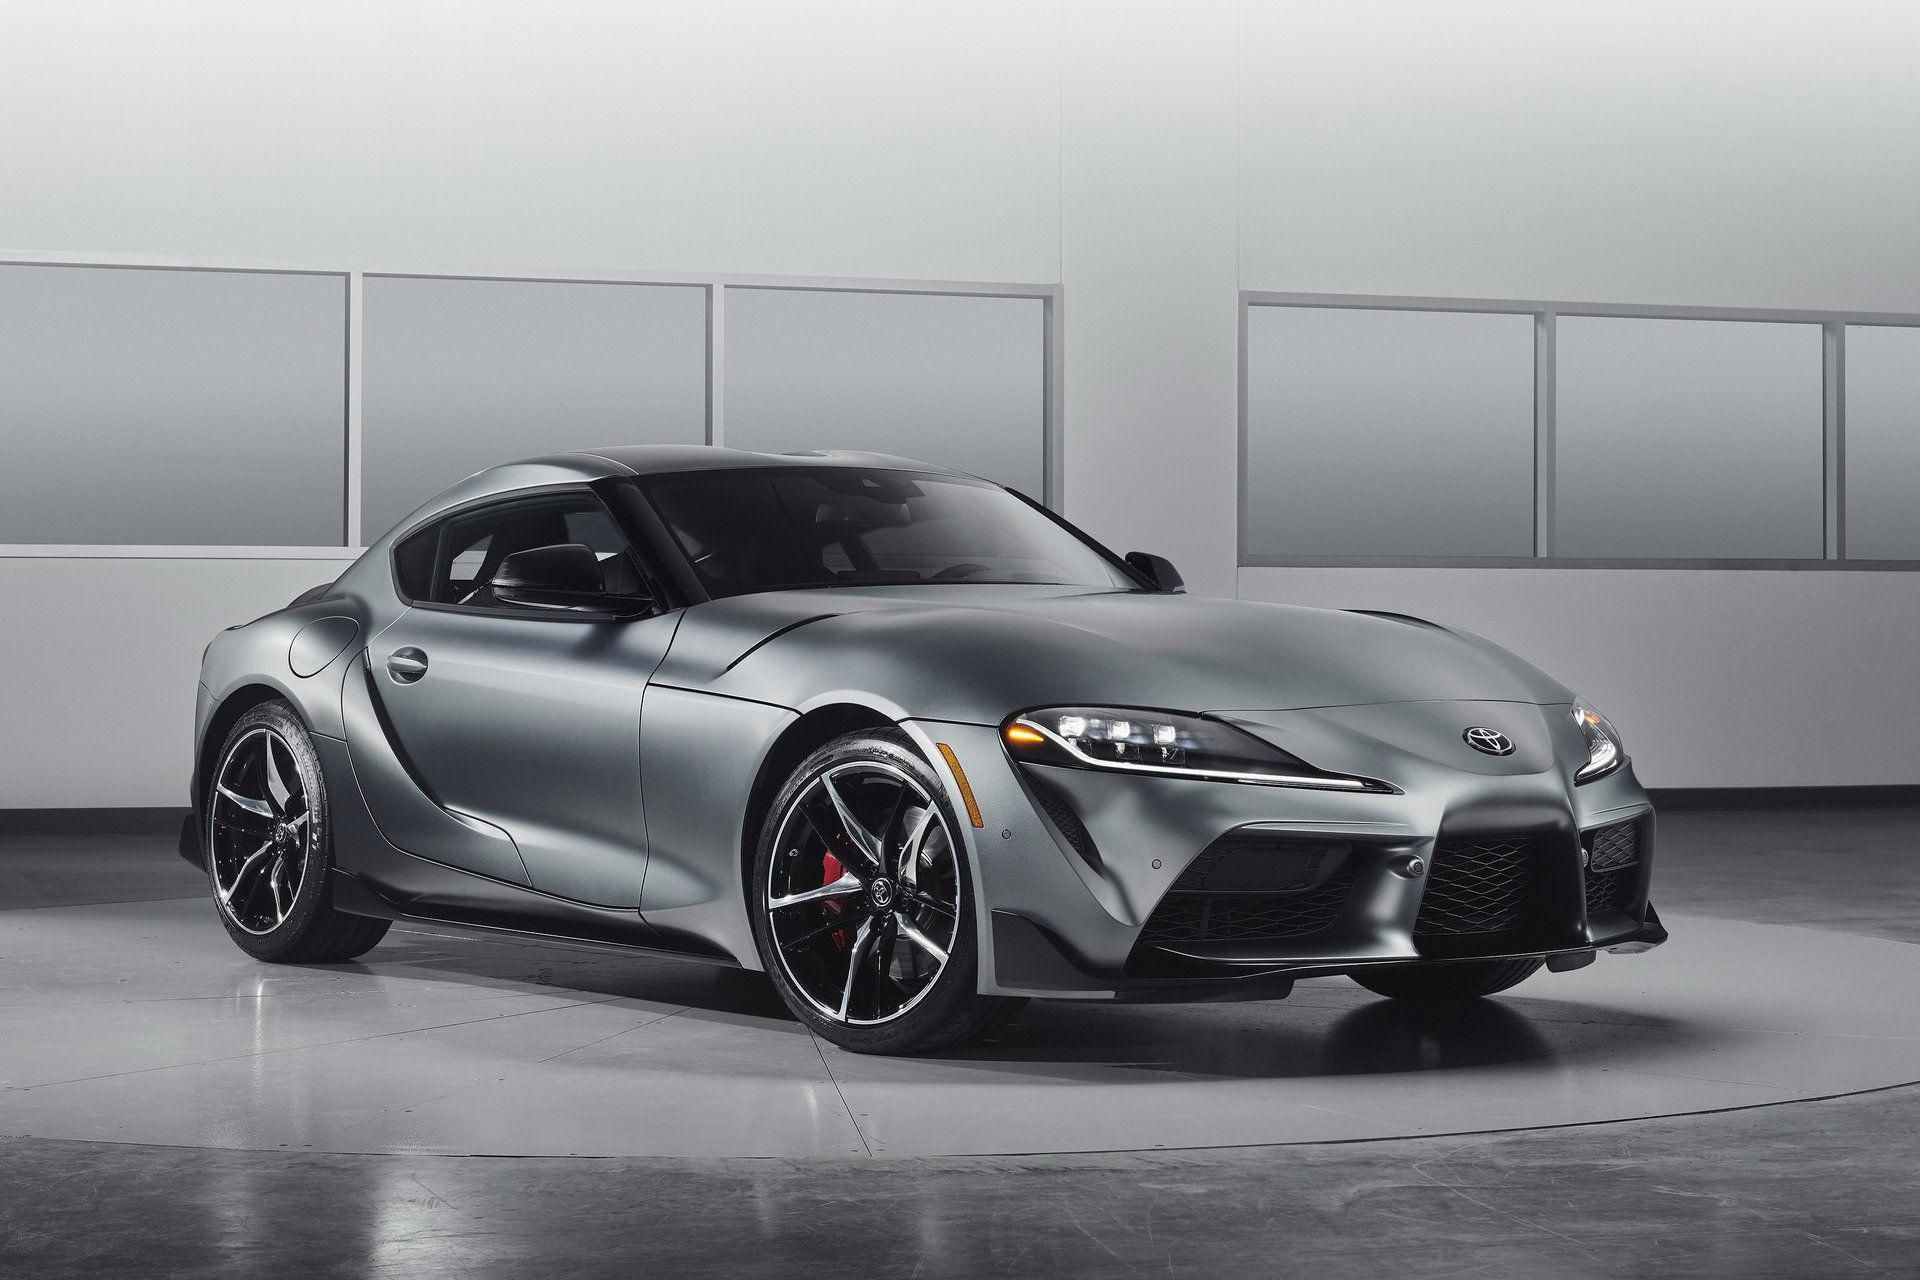 2020 Toyota Gr Supra Prices Officially Released Start From 49 990 In The U S Carscoops Newsportscars Luxuryspor New Toyota Supra Toyota Supra Toyota Cars